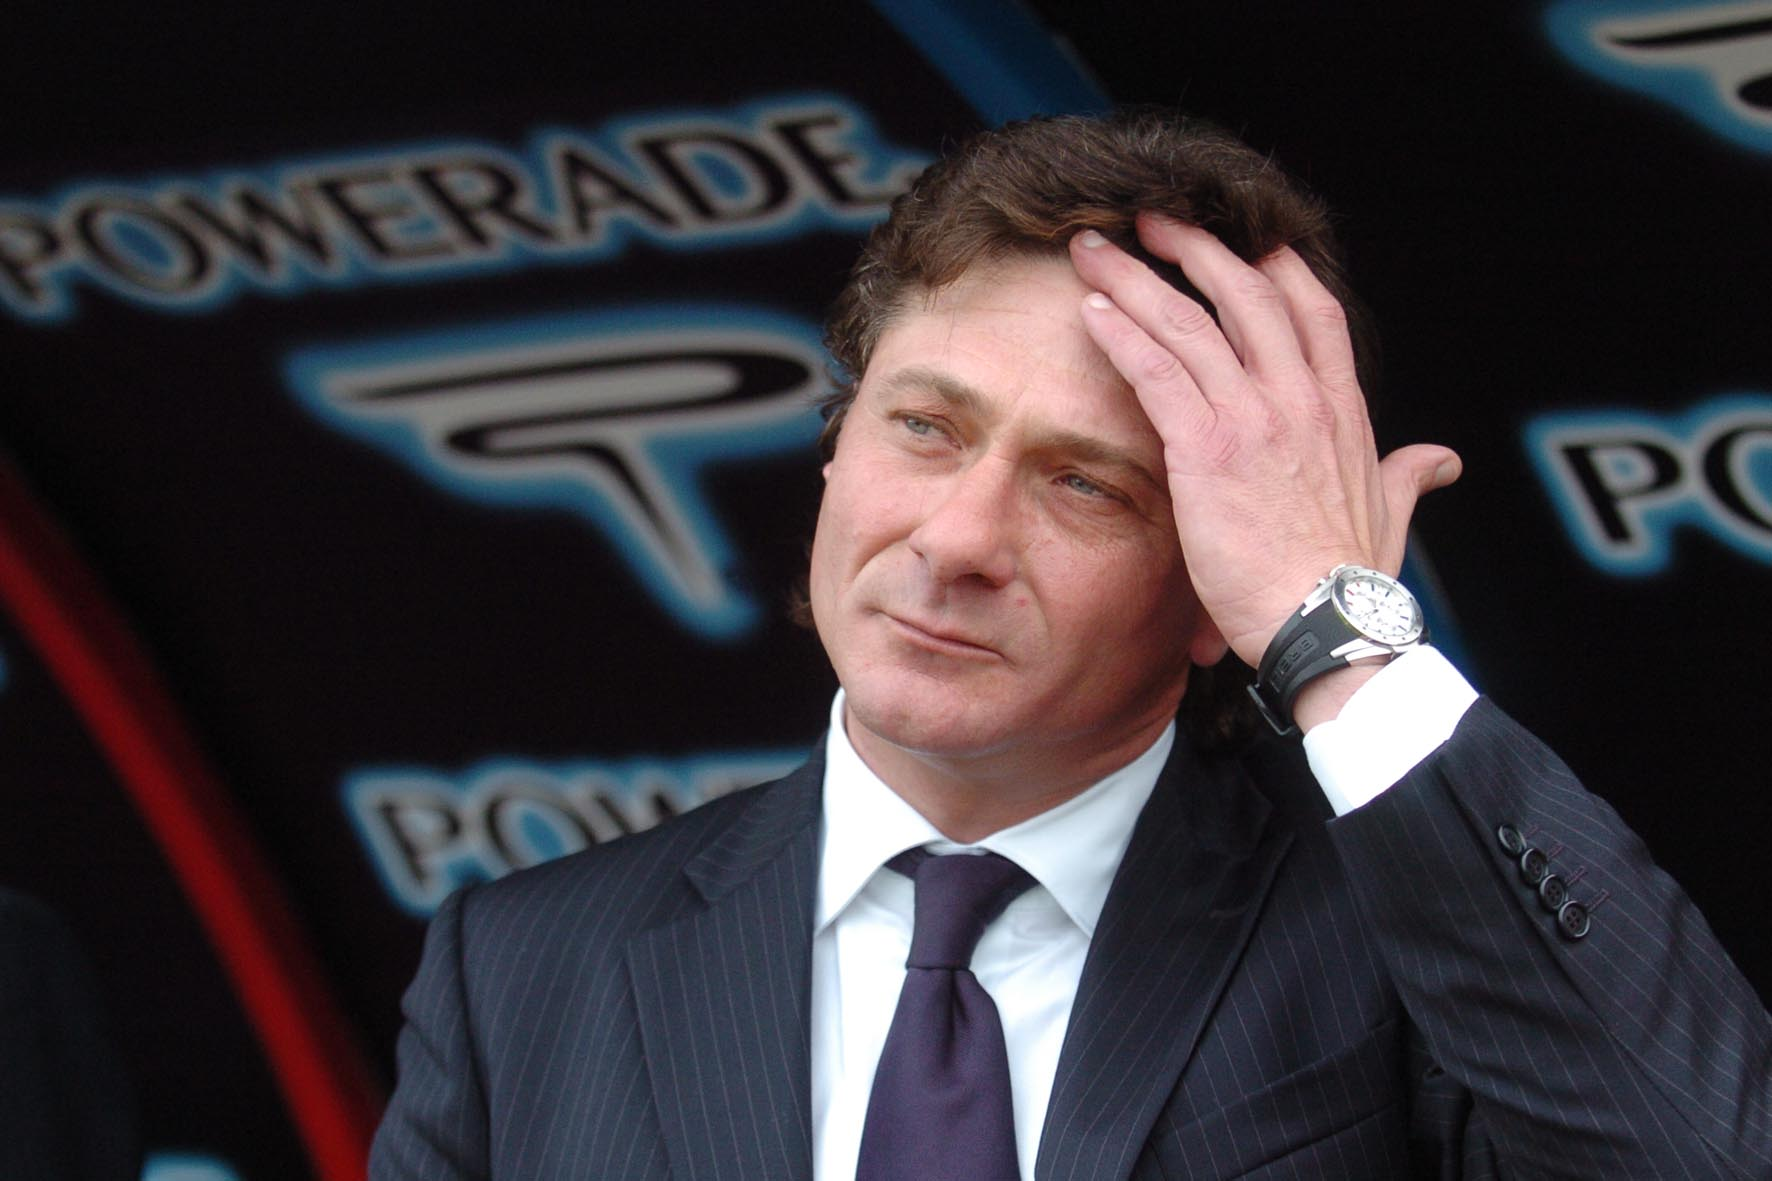 While Inter Milan Has Given Walter Mazzarri the Vote of Confidence, Is He Cut Out For The Job?